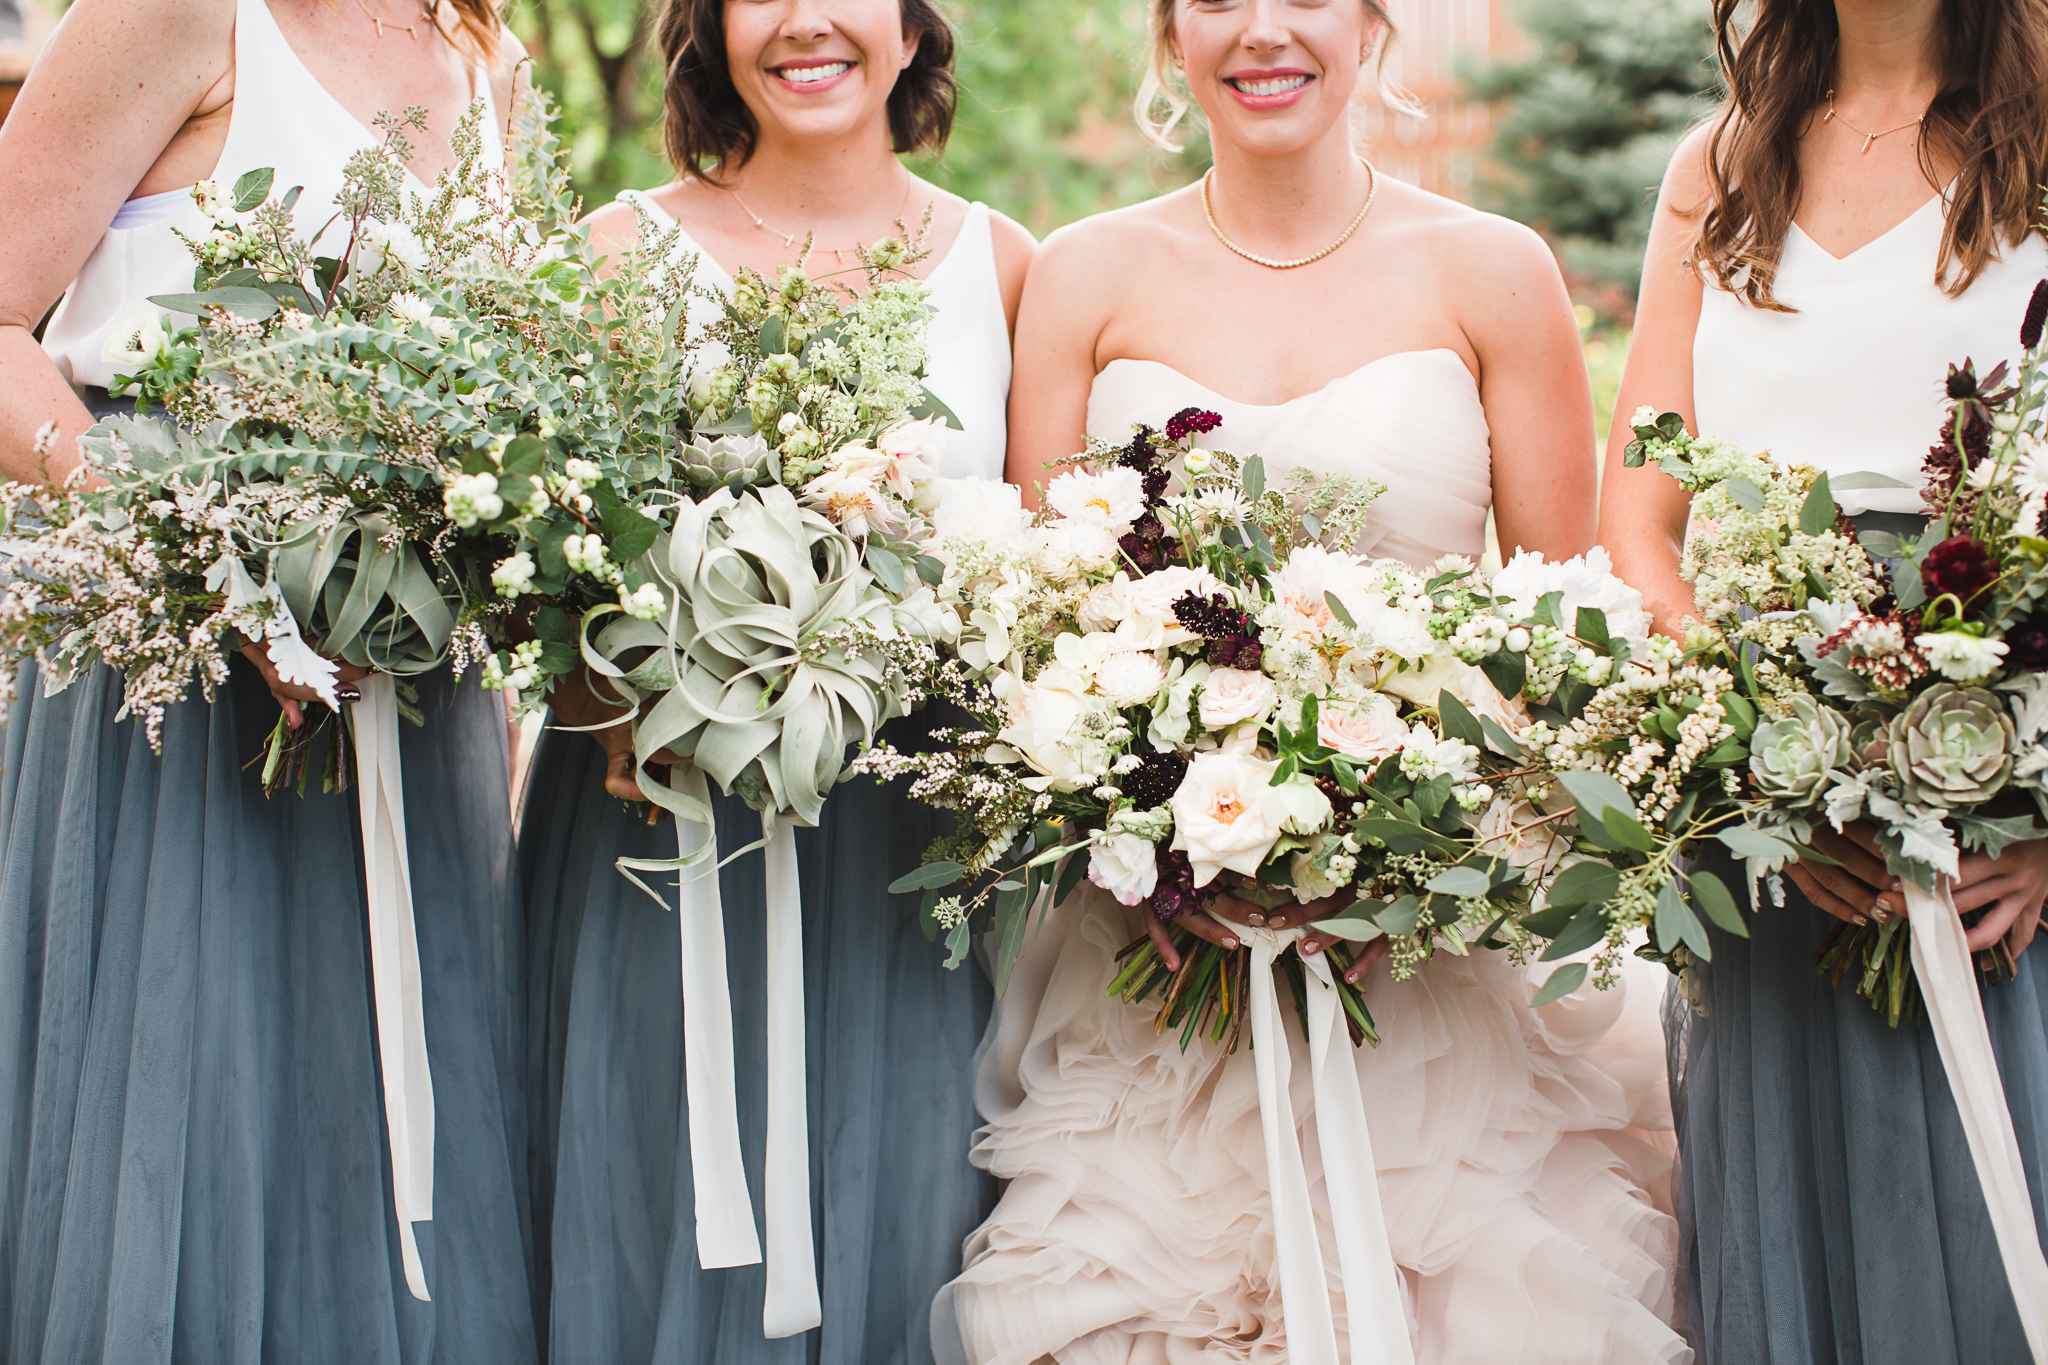 These bouquets by The Daisy Chain are stealing the show in this image.